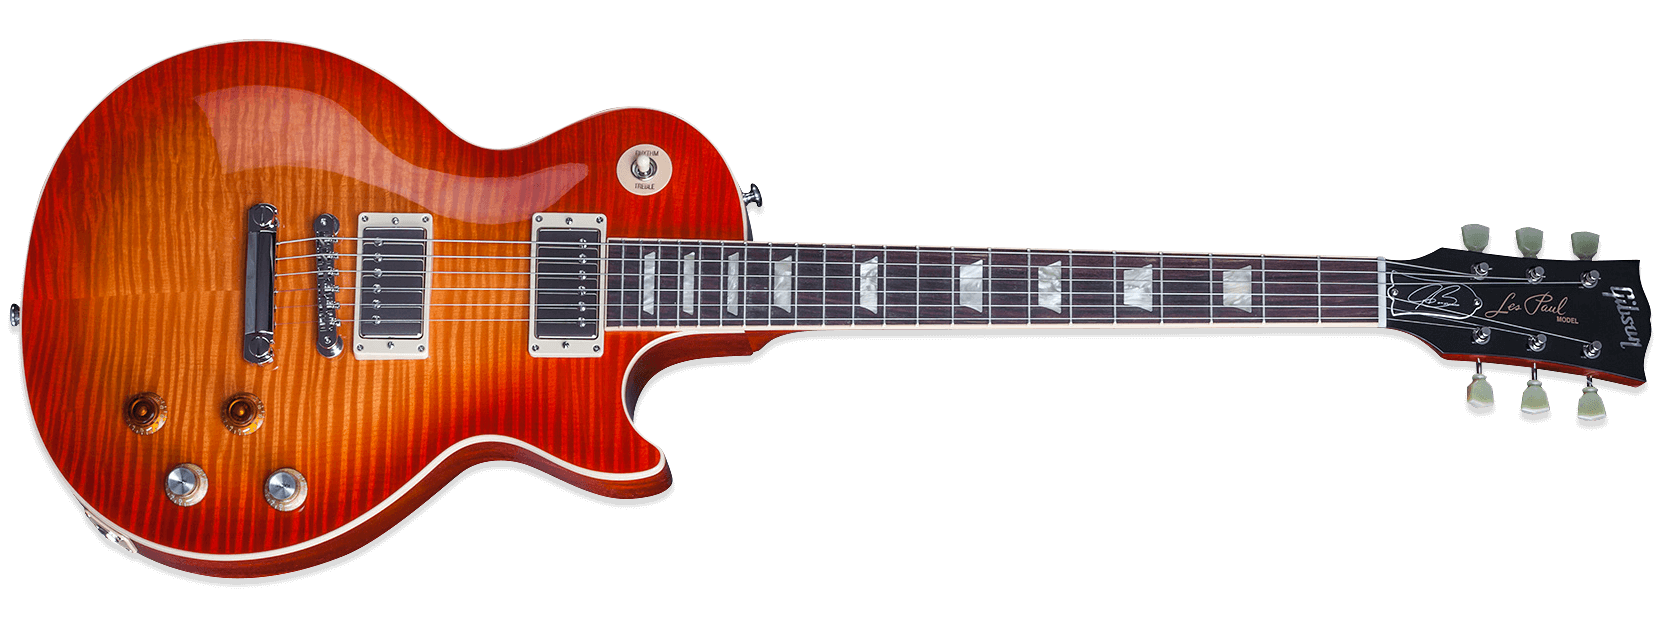 Gibson Les Paul Joe Bonamassa Tomato Soup Burst